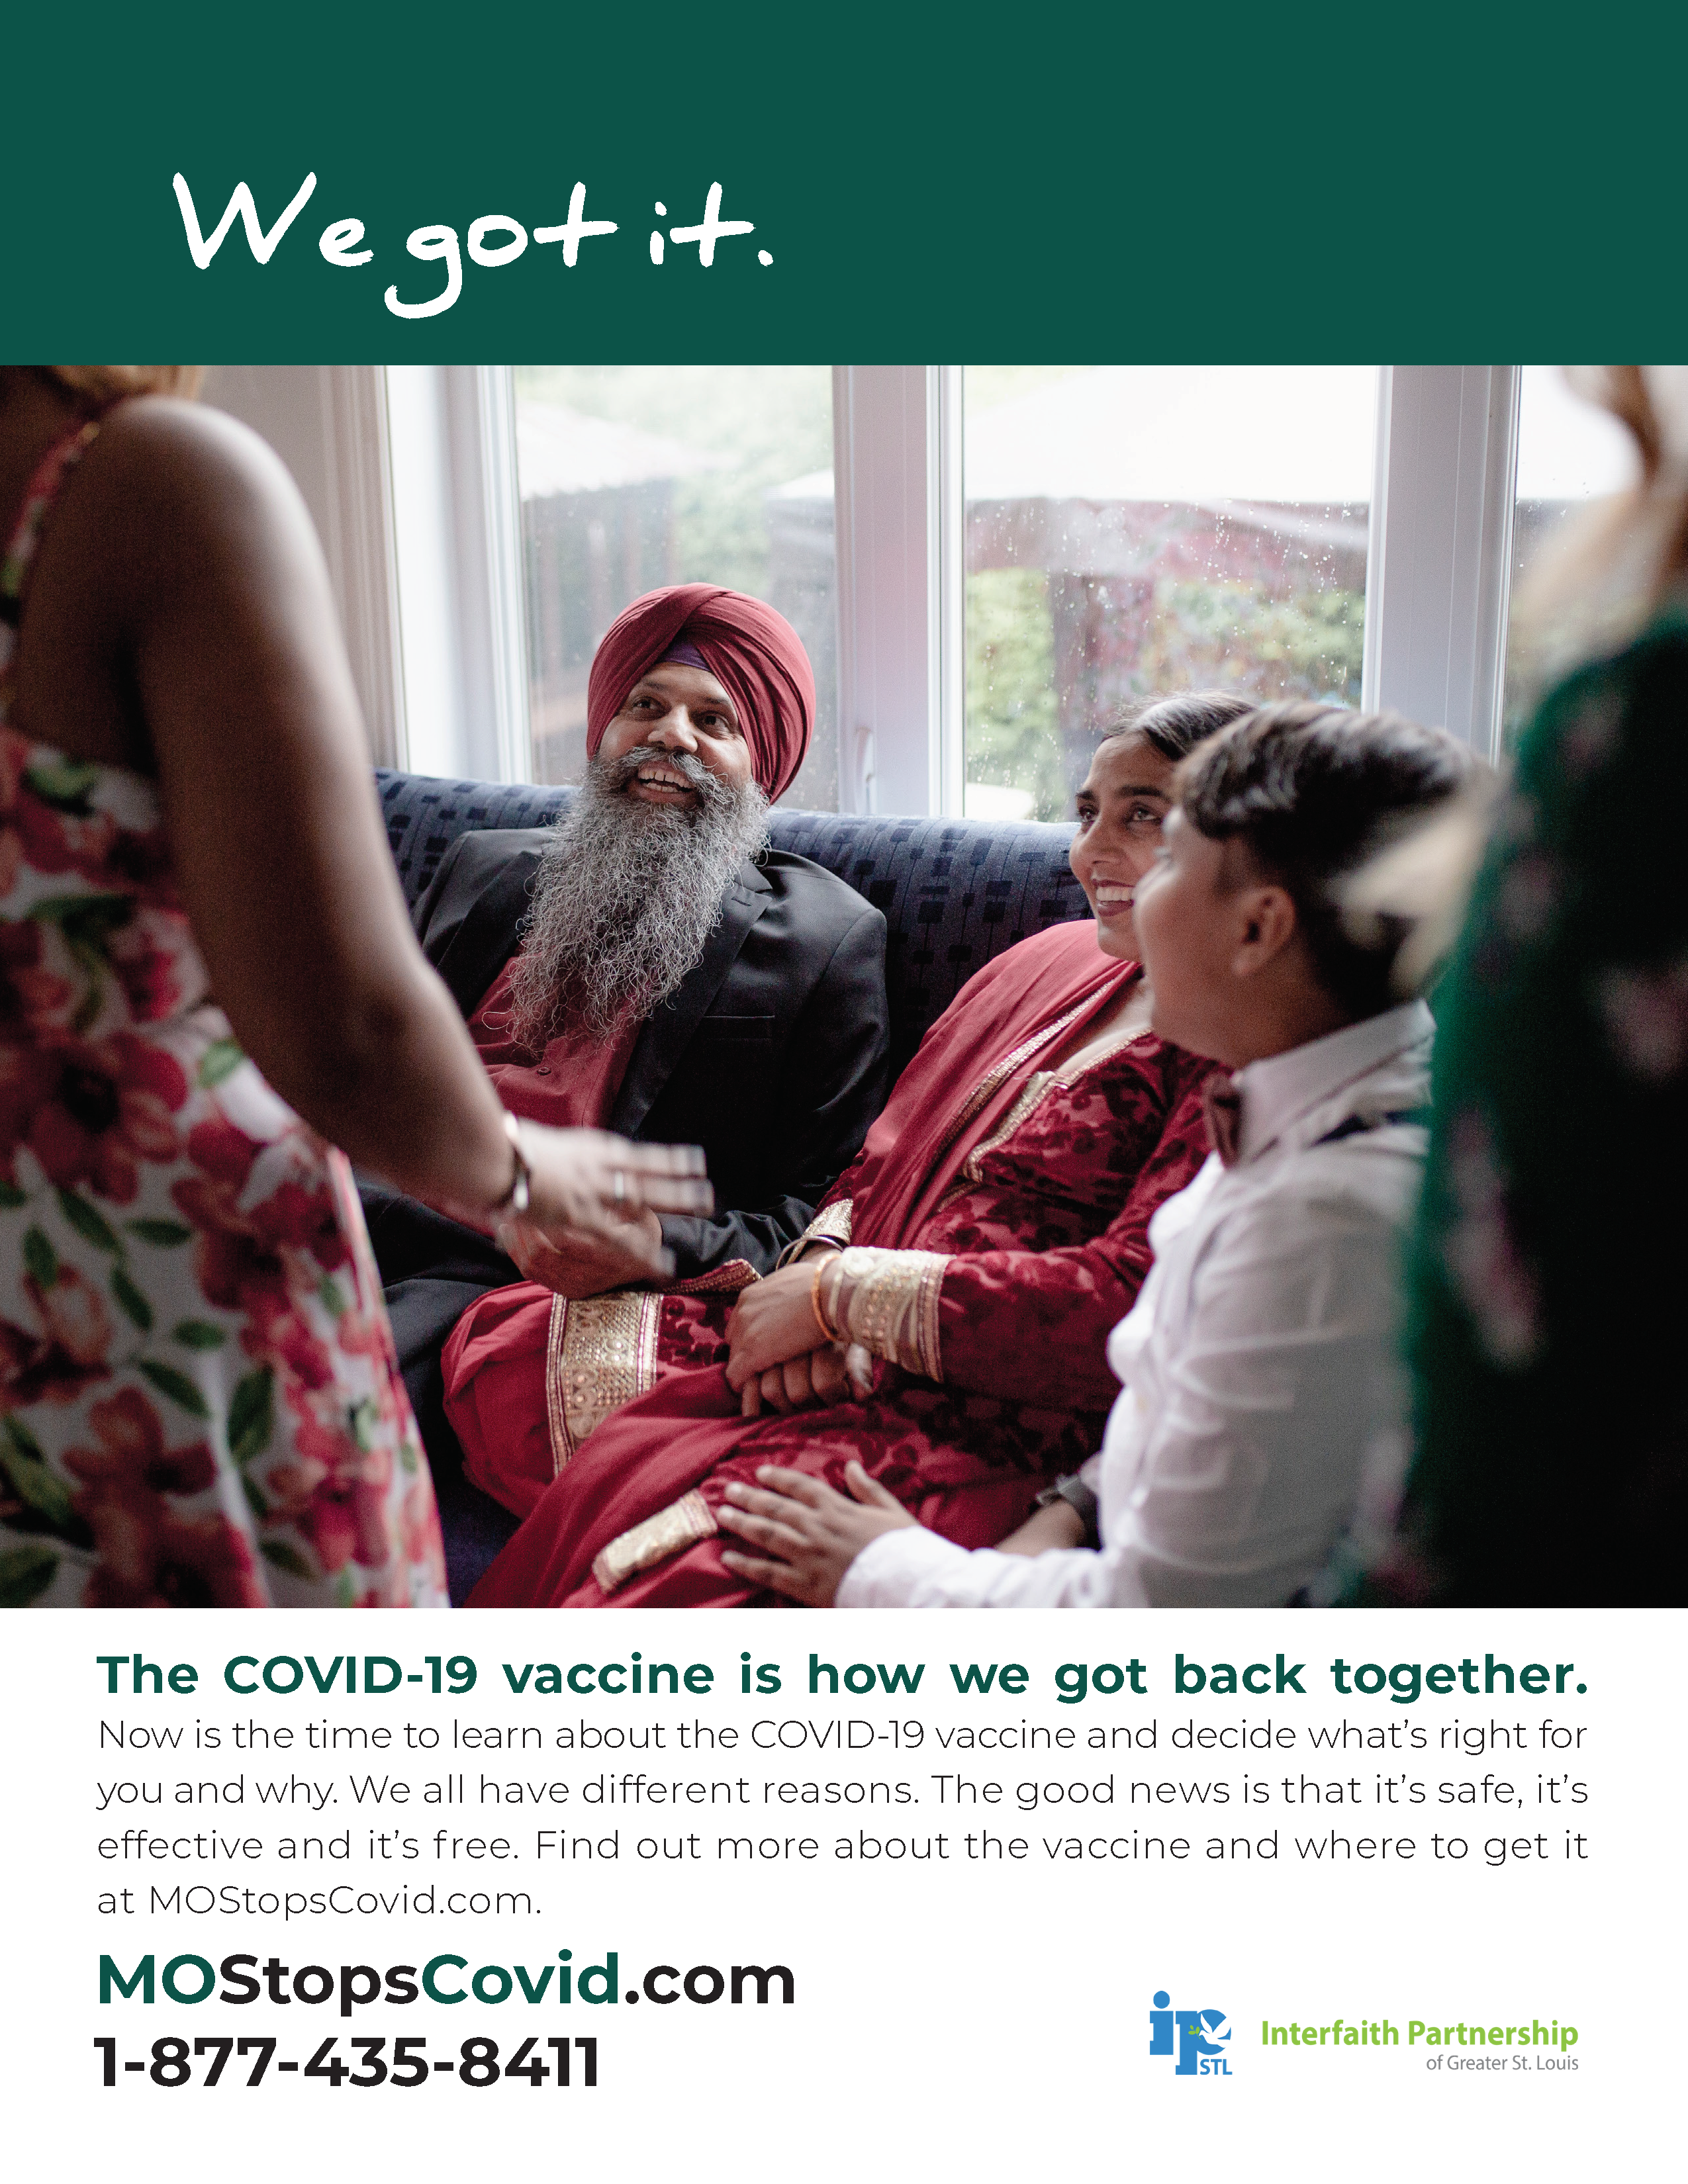 """A photograph showing a Sikh family laughing together on the couch. The central figure is a Sikh man wearing a red turban, smiling widely. Above, the text reads """"We got it"""" over a dark green border. Below, the text reads, """"The COVID-19 vaccine is how we got back together. Now is the time to learn about the COVID-19 vaccine and decide what's right for you and why. We all have different reasons. The good news is that it's safe, it's effective and it's free. FInd out more about the vaccine and where to get it at MOStopsCovid.com or by calling 1-877-435-8411. Courtesy of Interfaith Partnership of Greater St. Louis"""